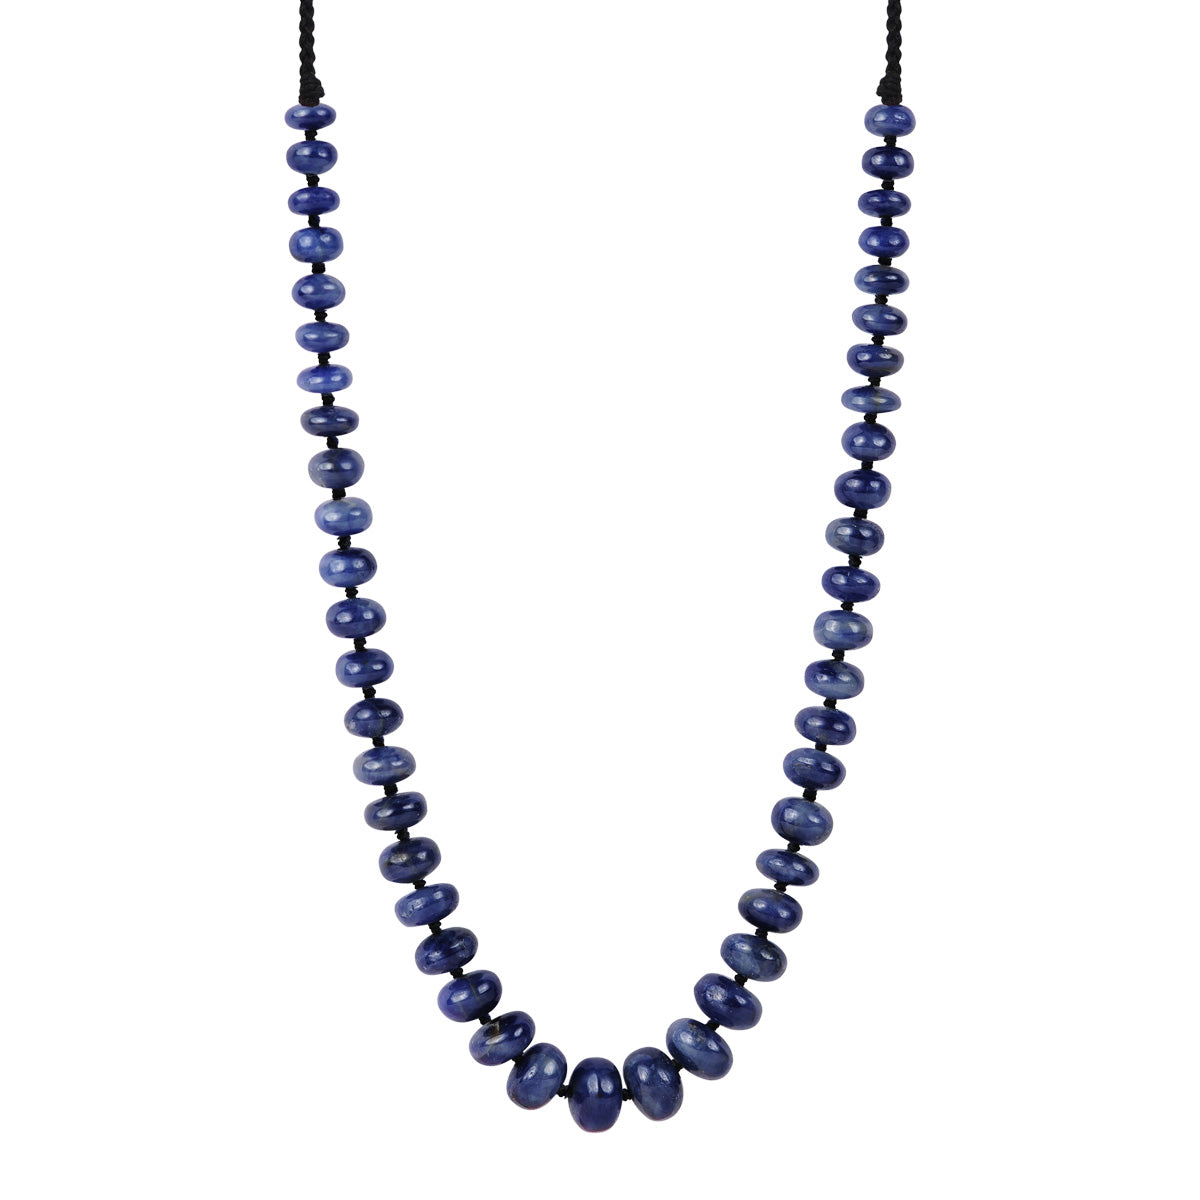 Sterling Silver Knotted Blue Sapphire Rondel Necklace on Cord